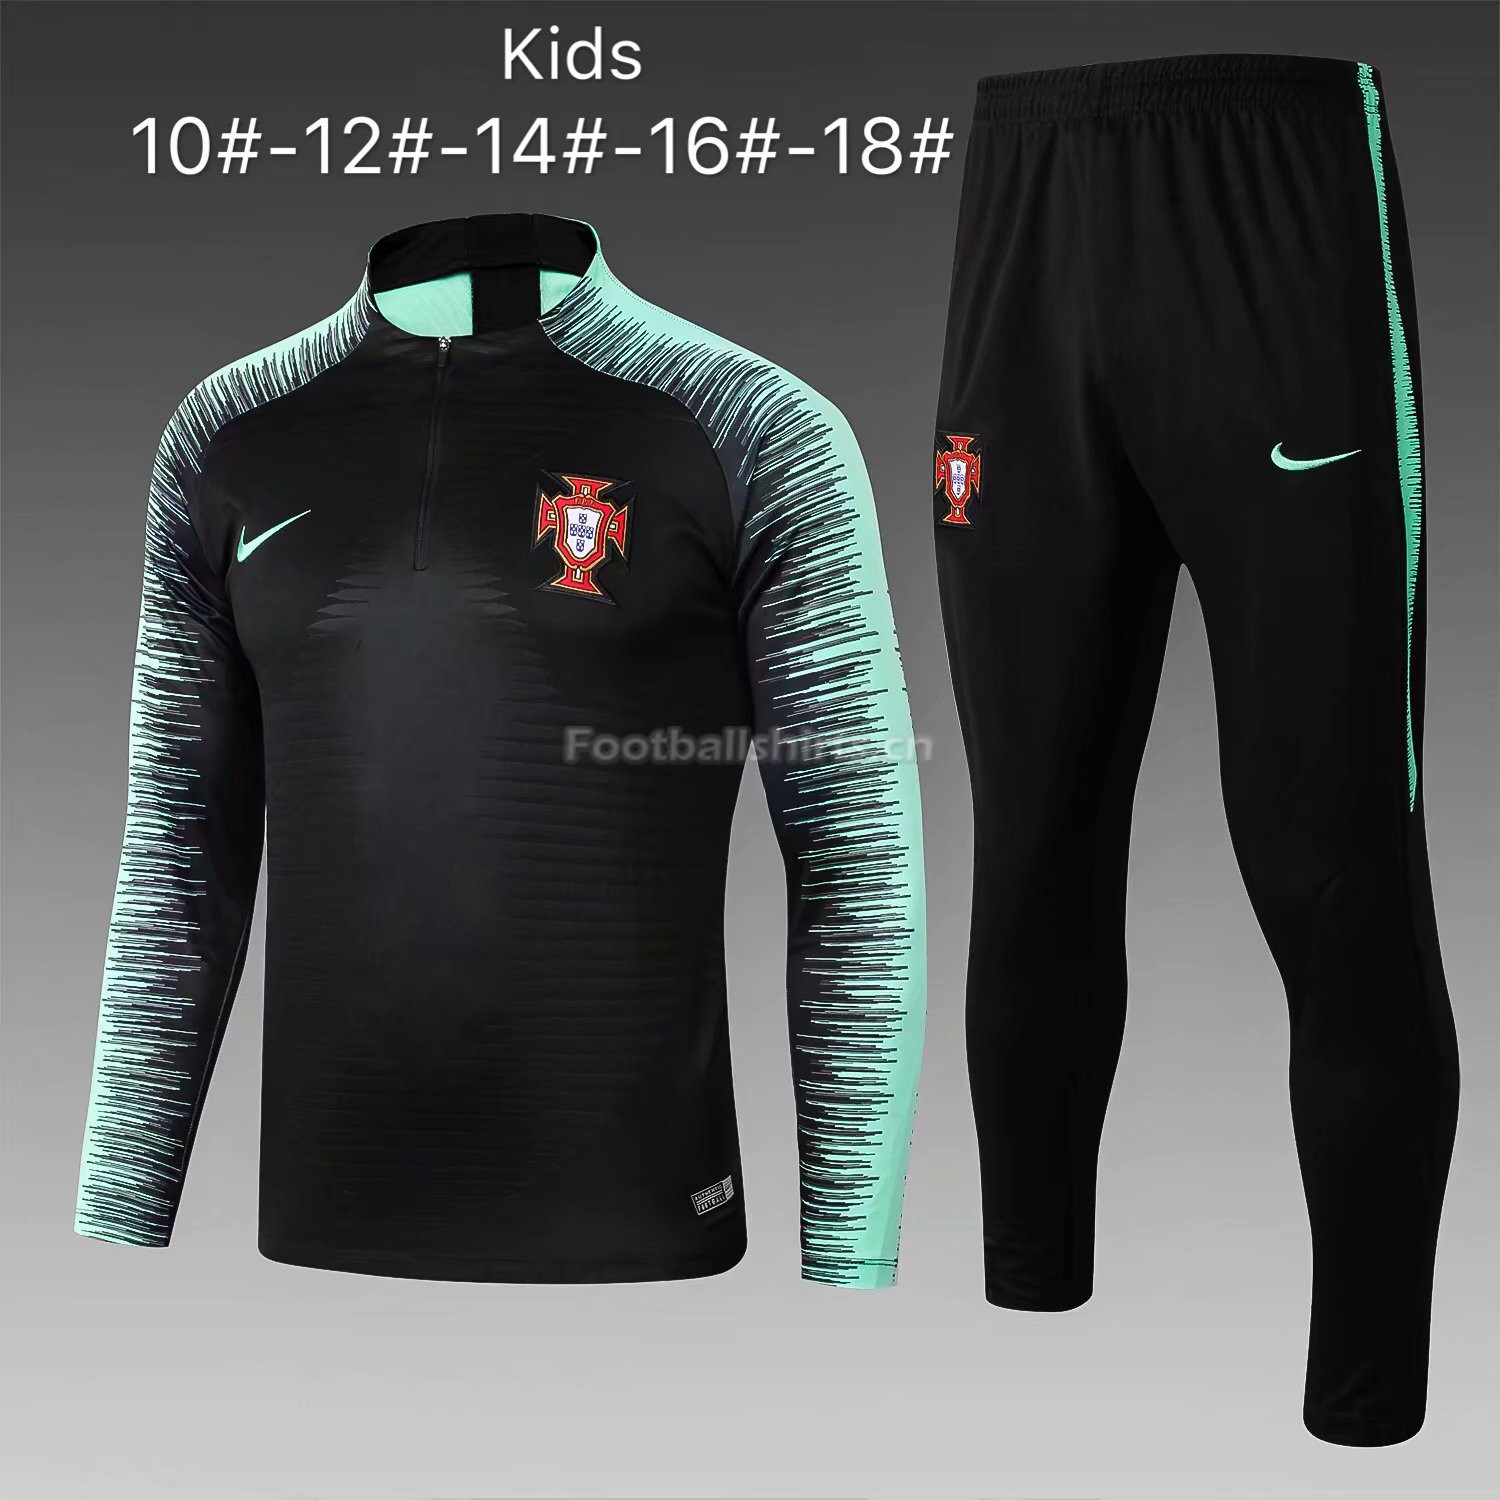 Kids Portugal FIFA World Cup 2018 Black Stripe Zipper Training S